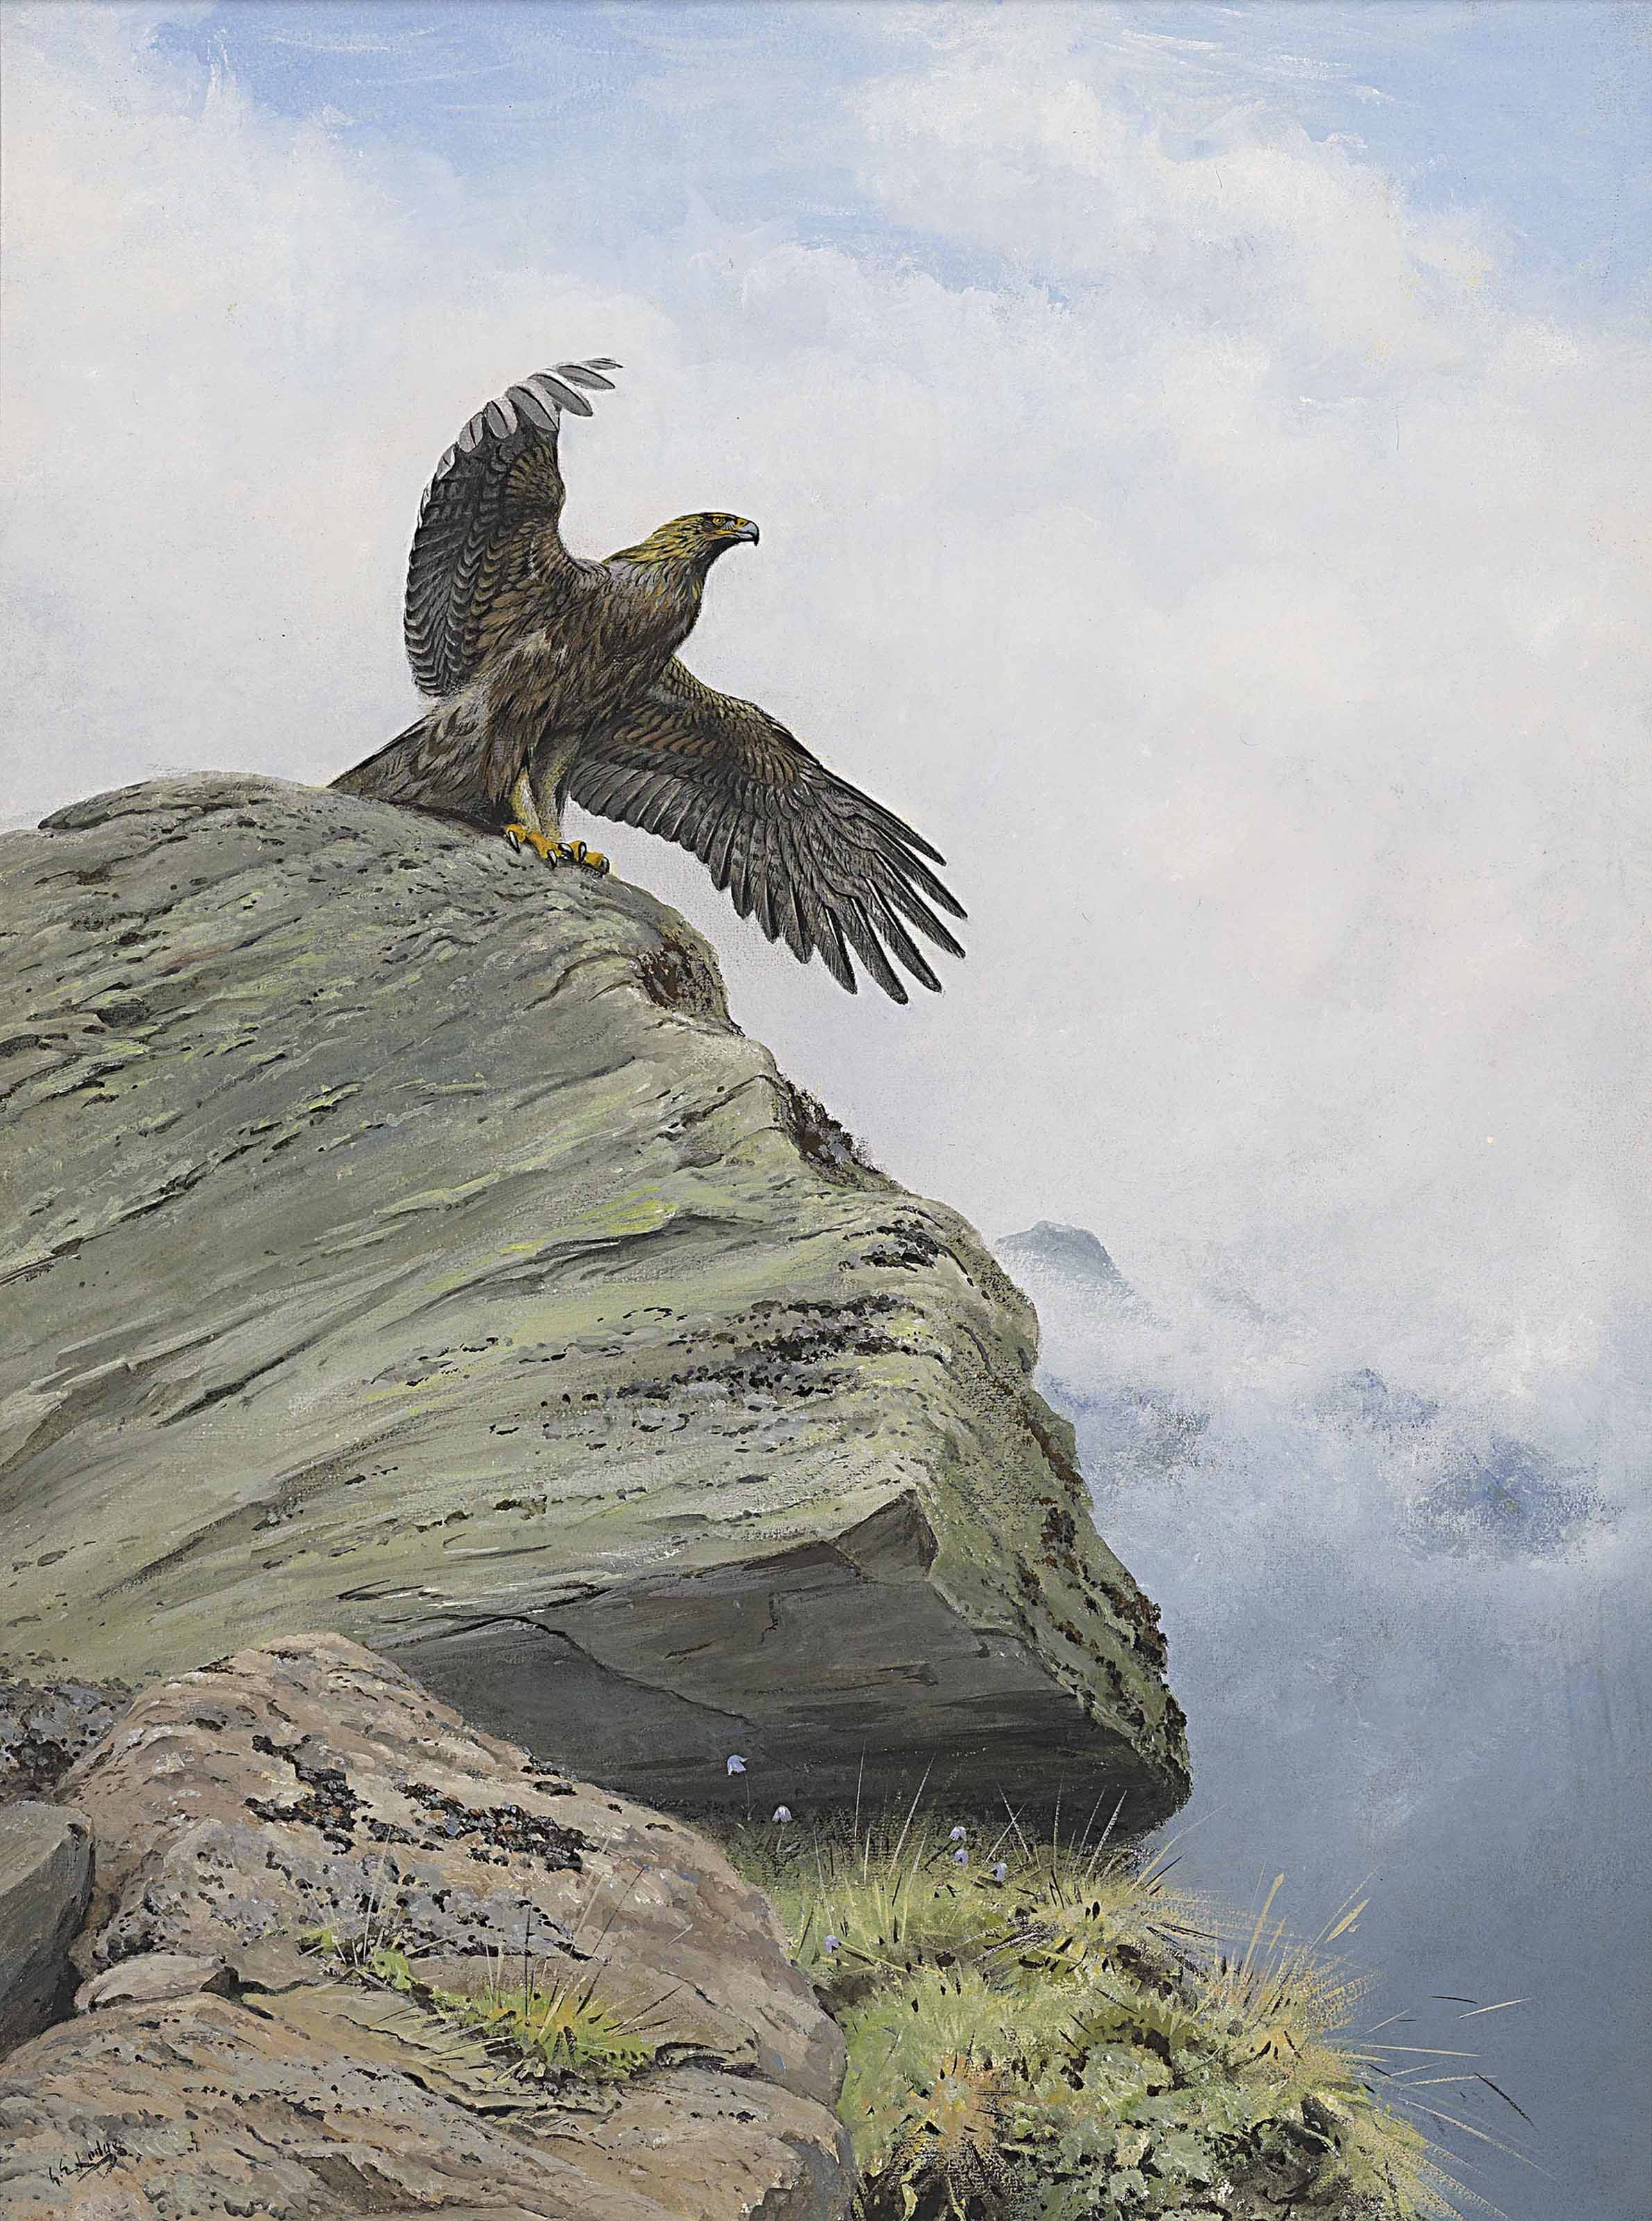 A golden eagle with outspread wings on a rocky outcrop